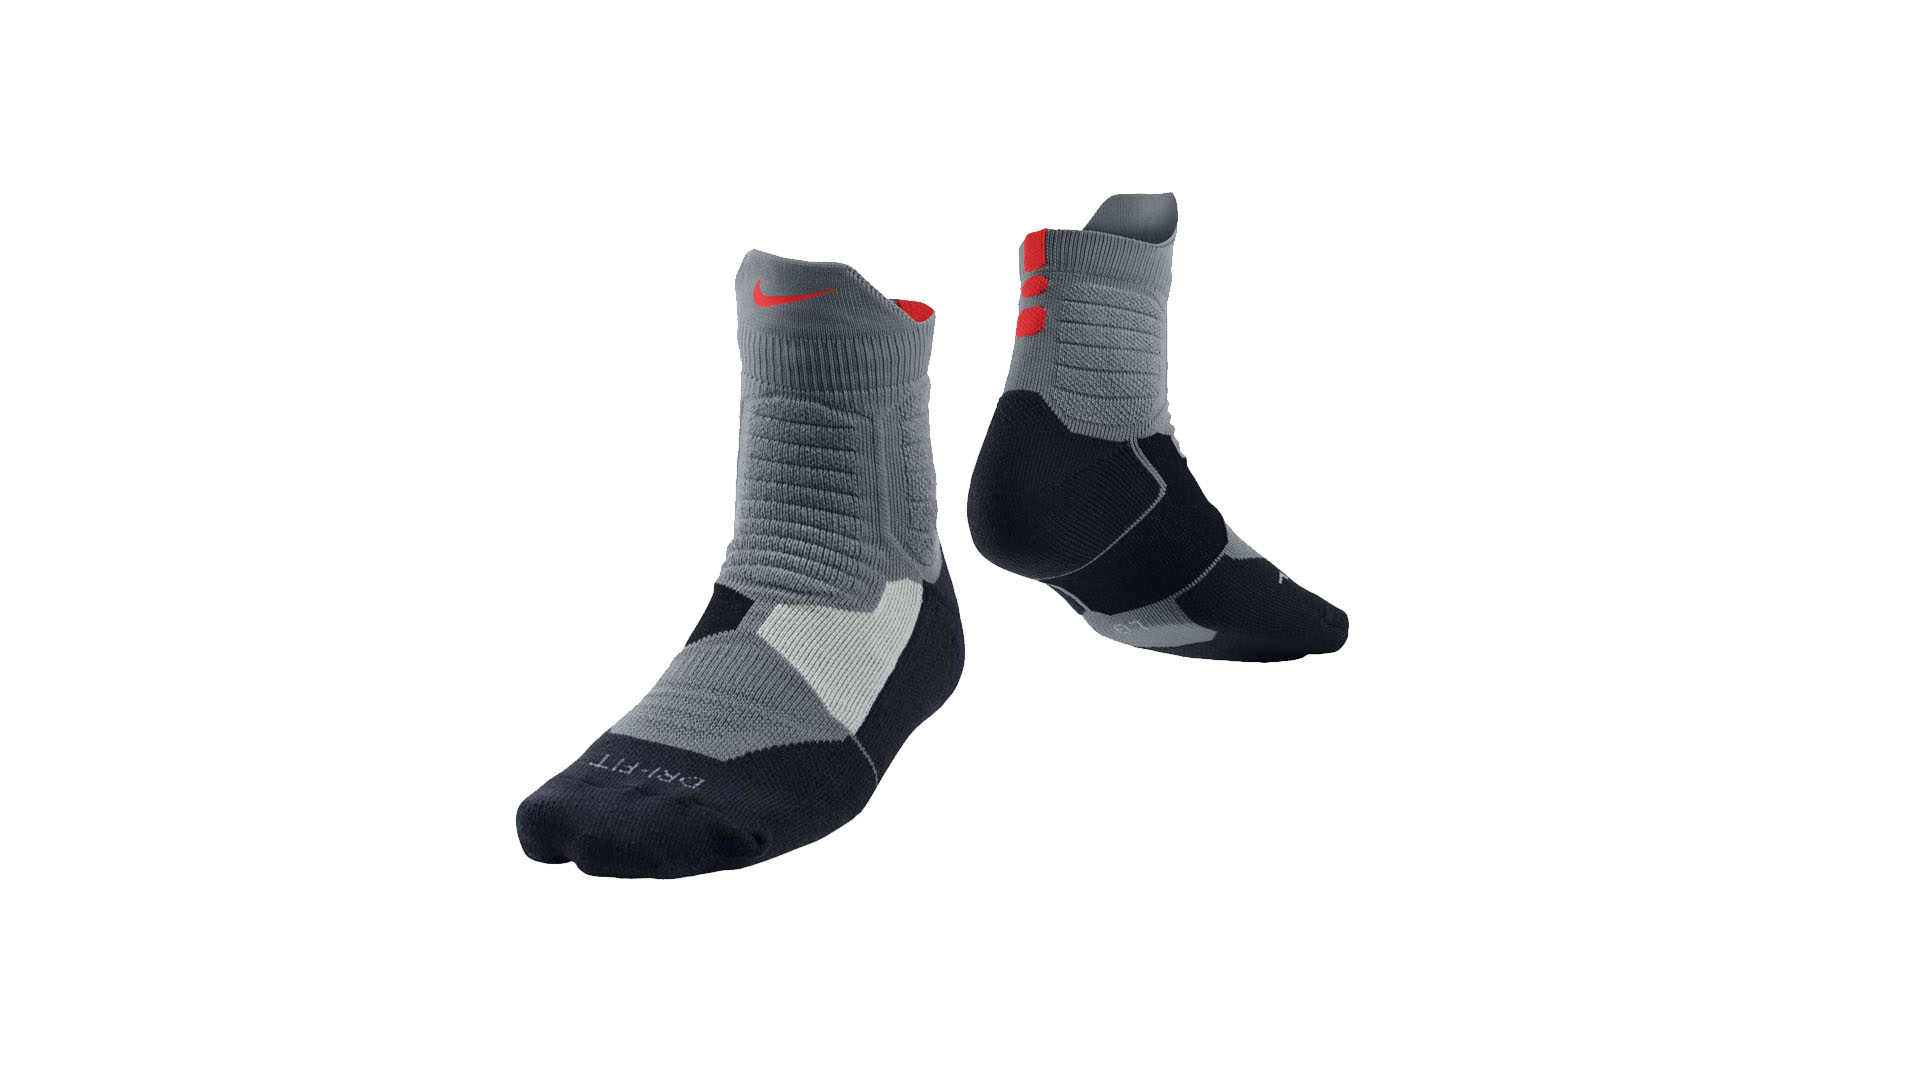 9f3f3eb0 Nike HyperElite Quarter Cut Sock - Available Now - WearTesters